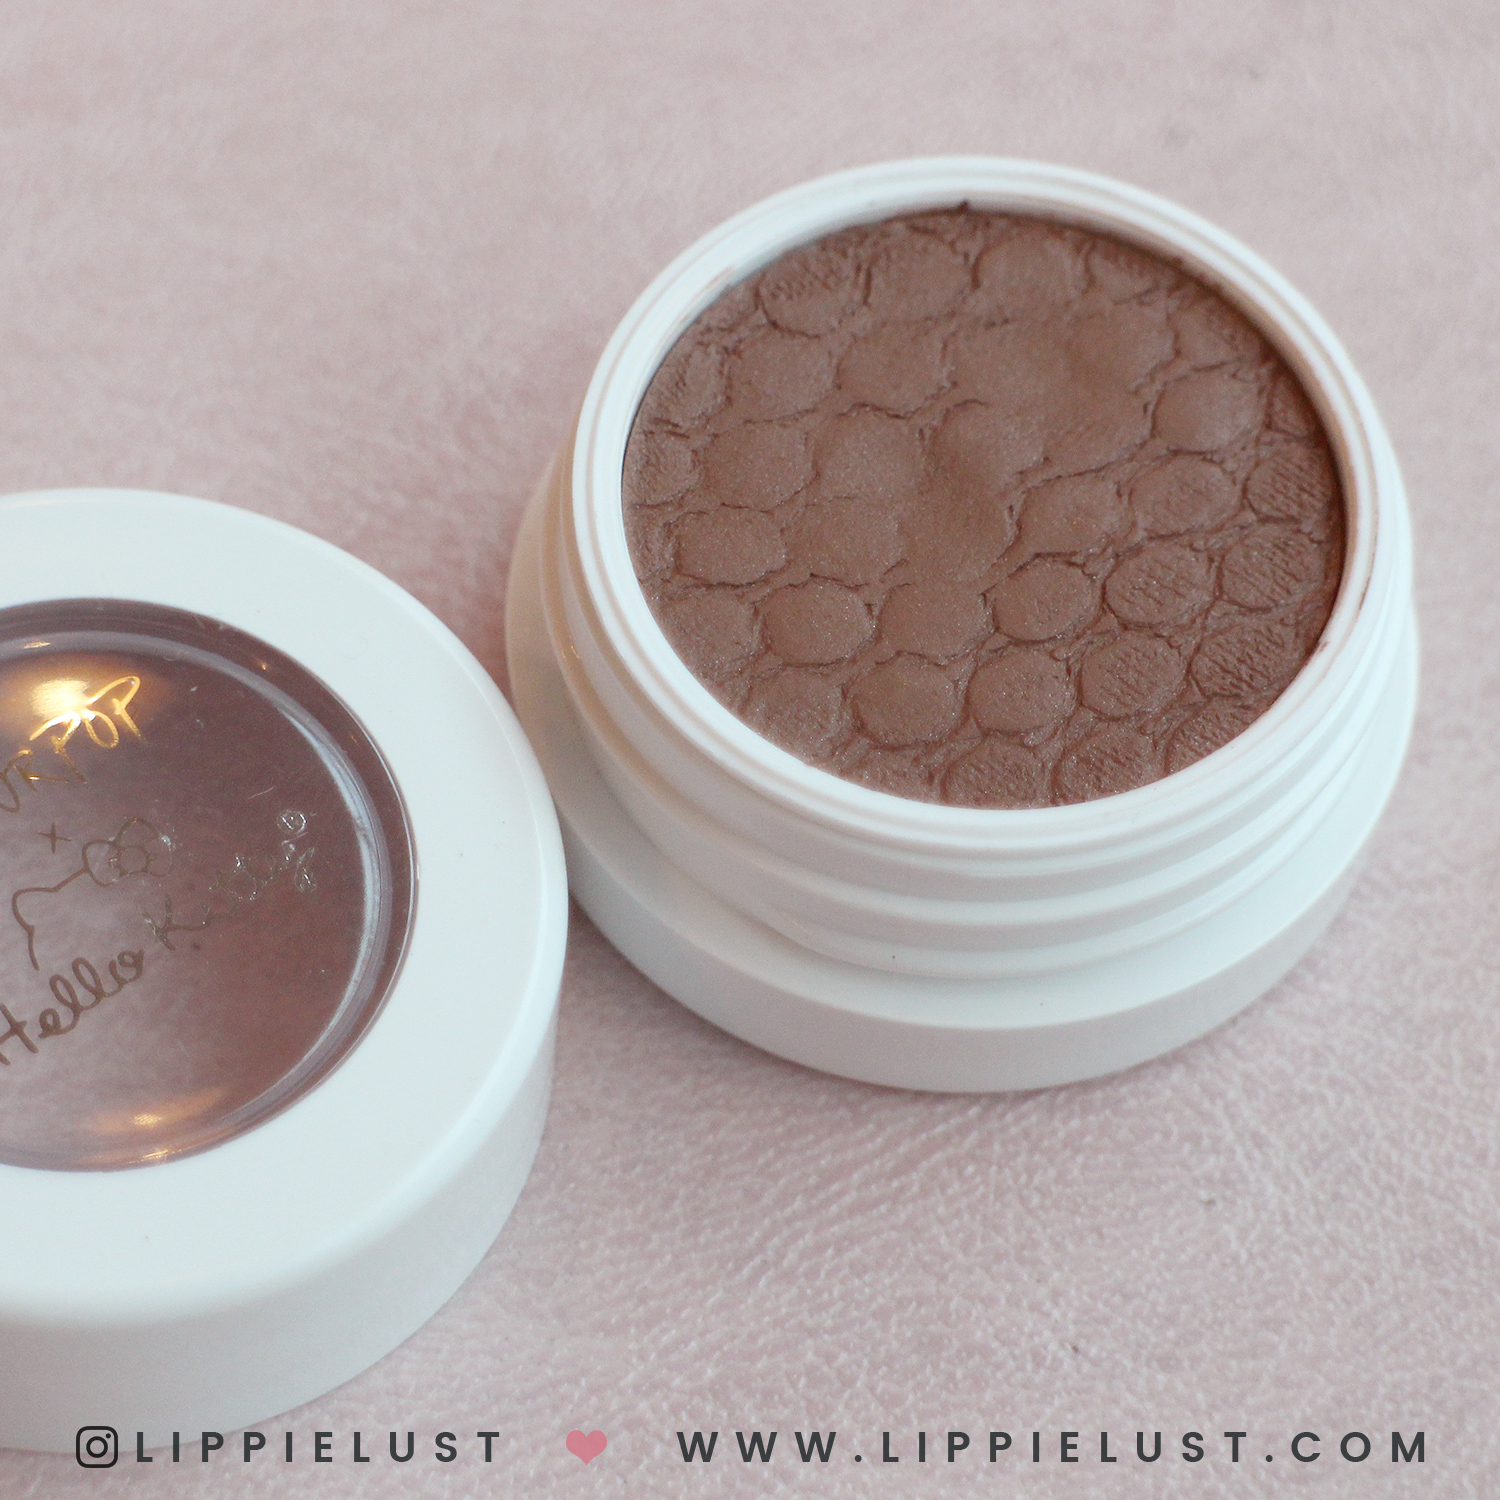 colourpop-hello-kitty-lippielust-8